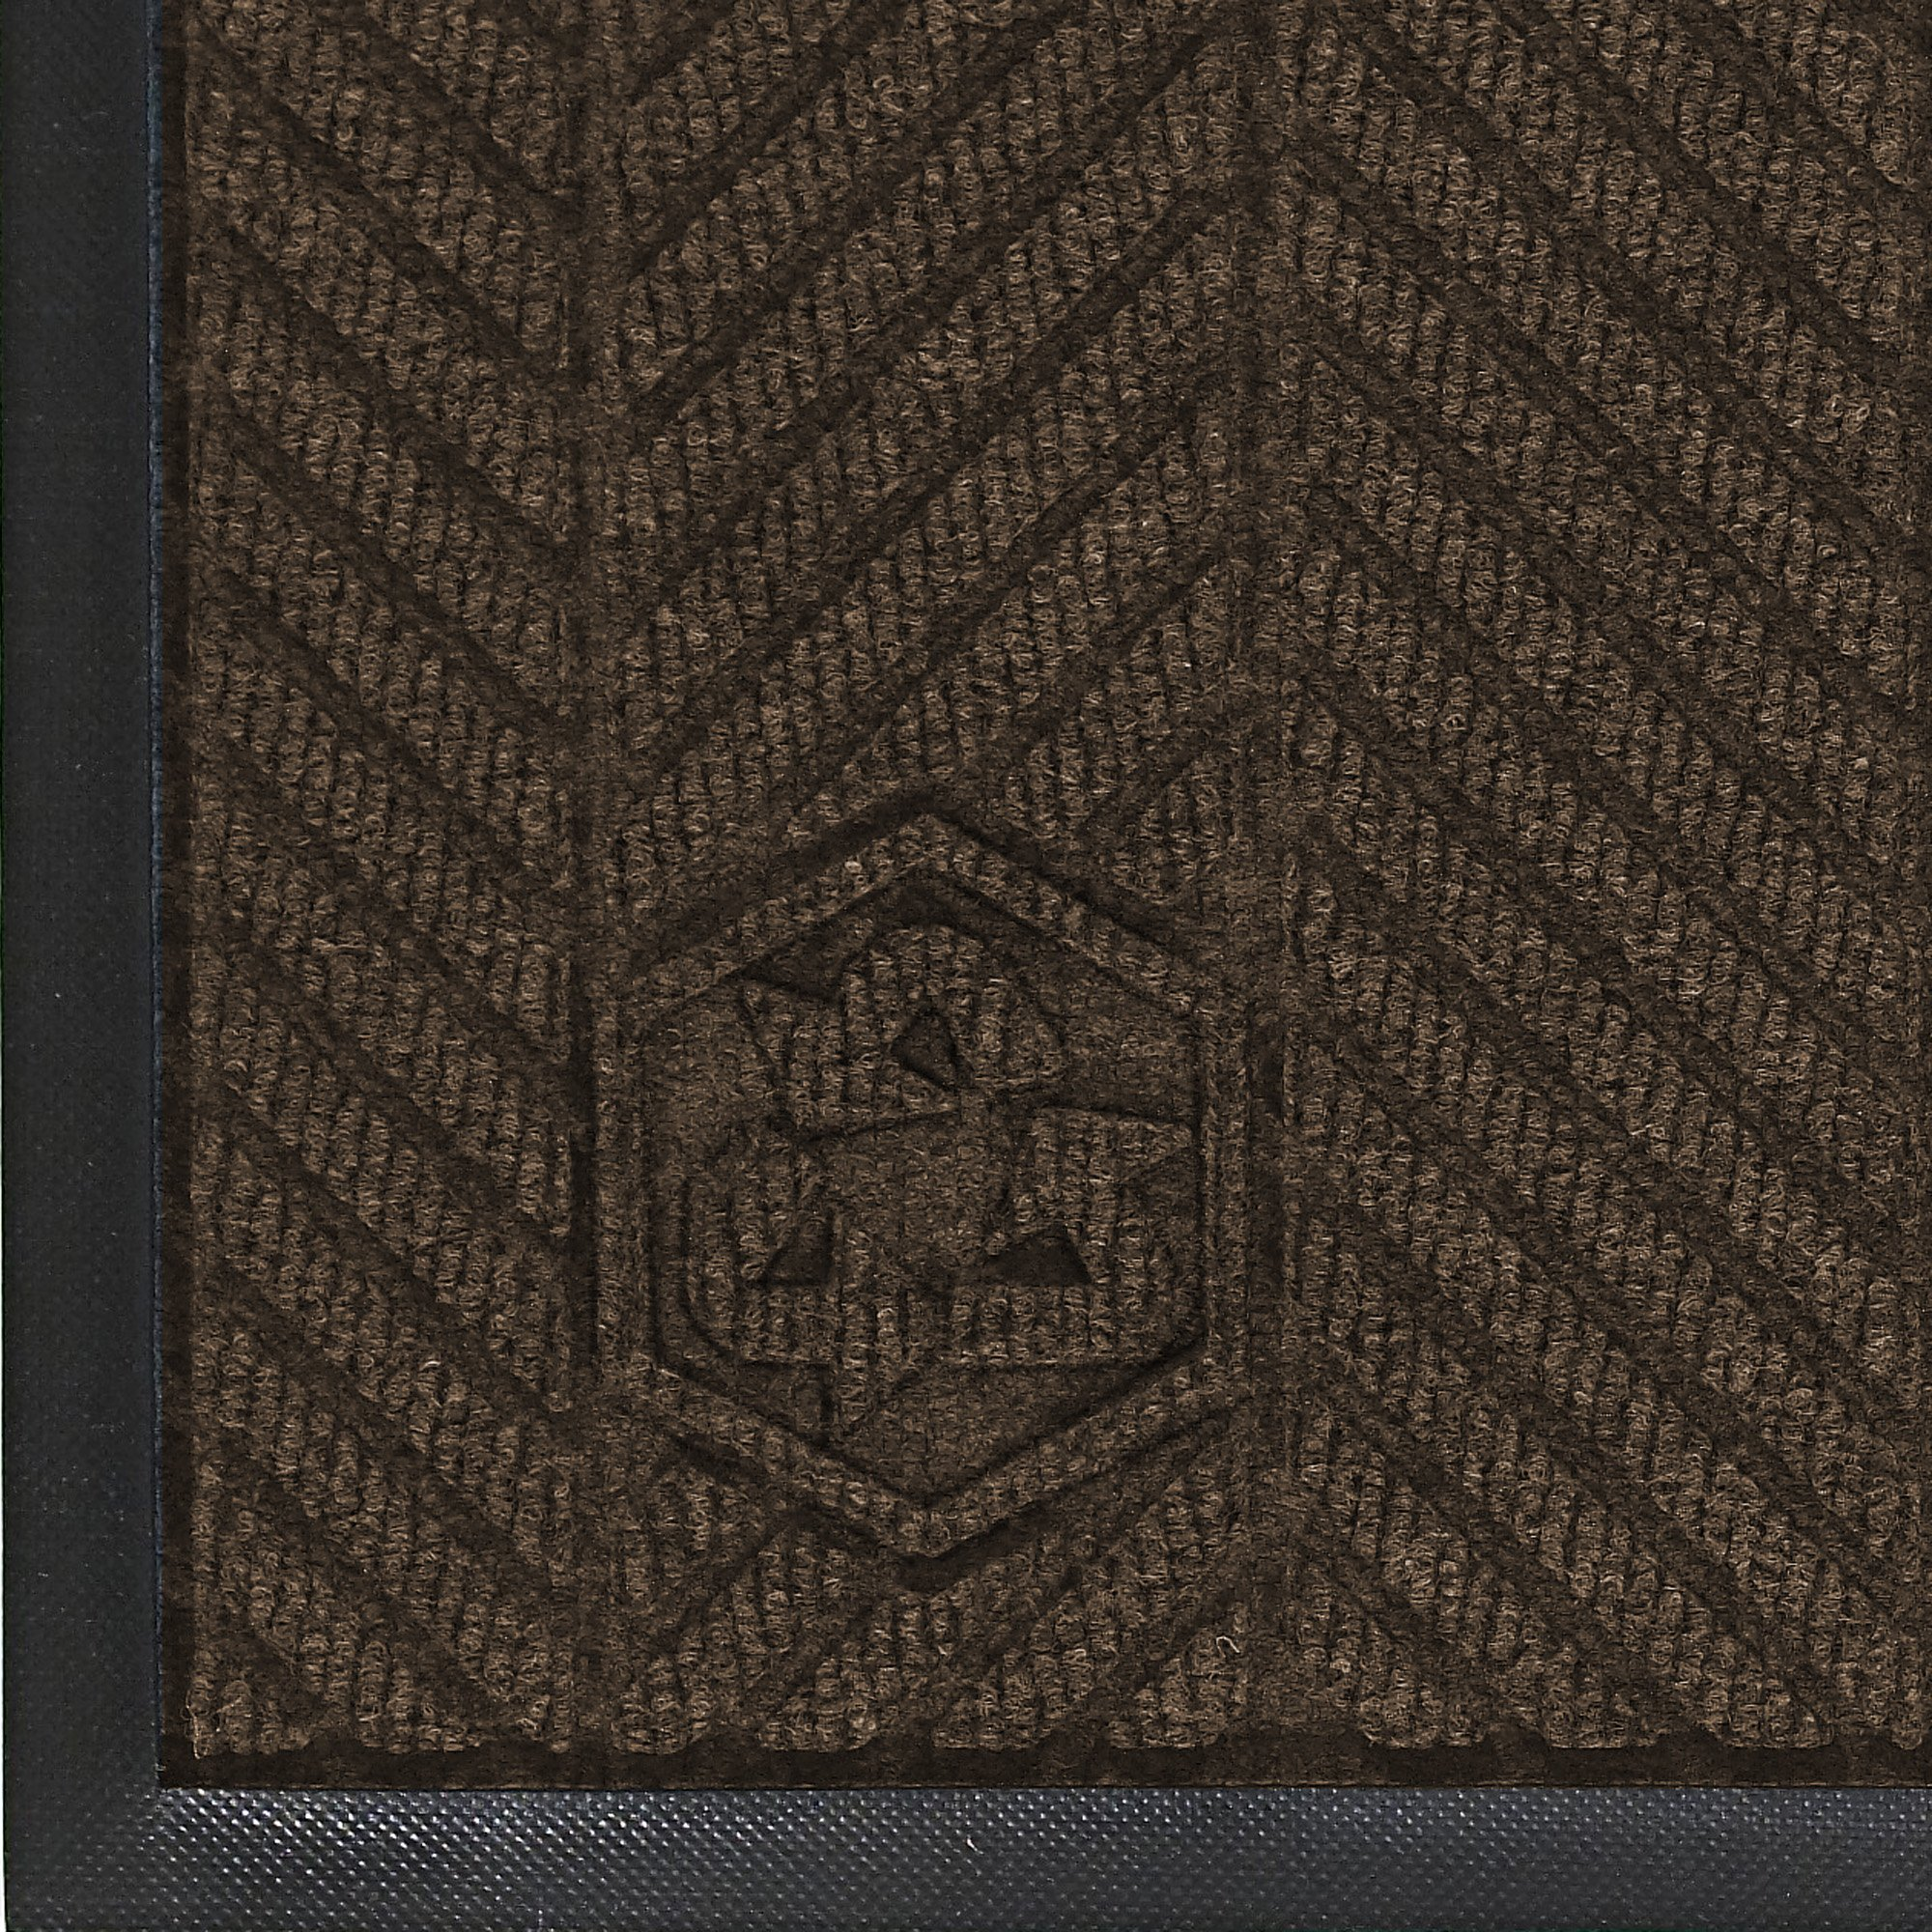 M+A Matting 2240 Waterhog Eco Elite PET Polyester Fiber Indoor/Outdoor Floor Mat, SBR Rubber Backing, 8.4' Length x 4' Width, 3/8'' Thick, Chestnut Brown